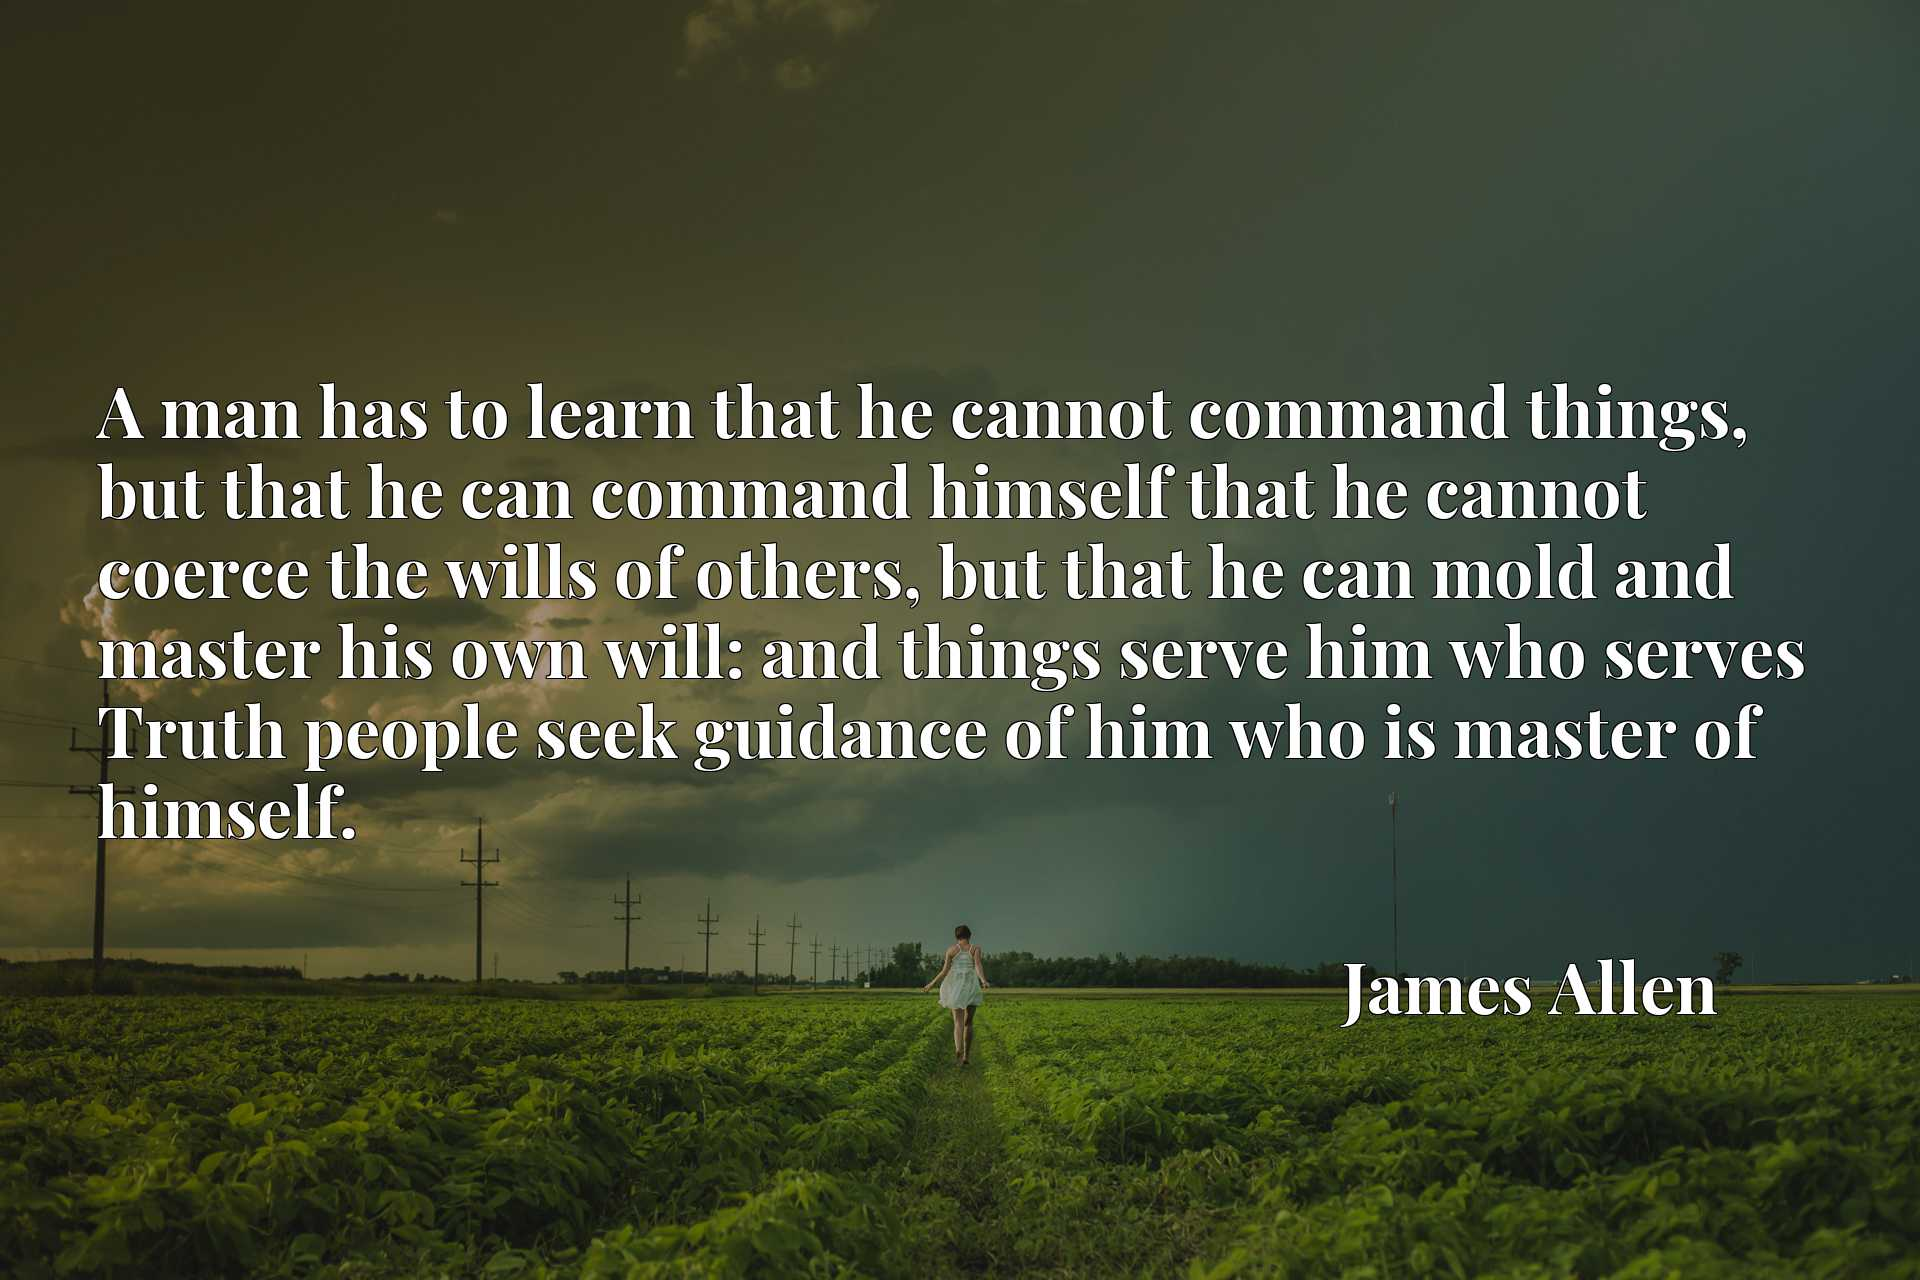 A man has to learn that he cannot command things, but that he can command himself that he cannot coerce the wills of others, but that he can mold and master his own will: and things serve him who serves Truth people seek guidance of him who is master of himself.